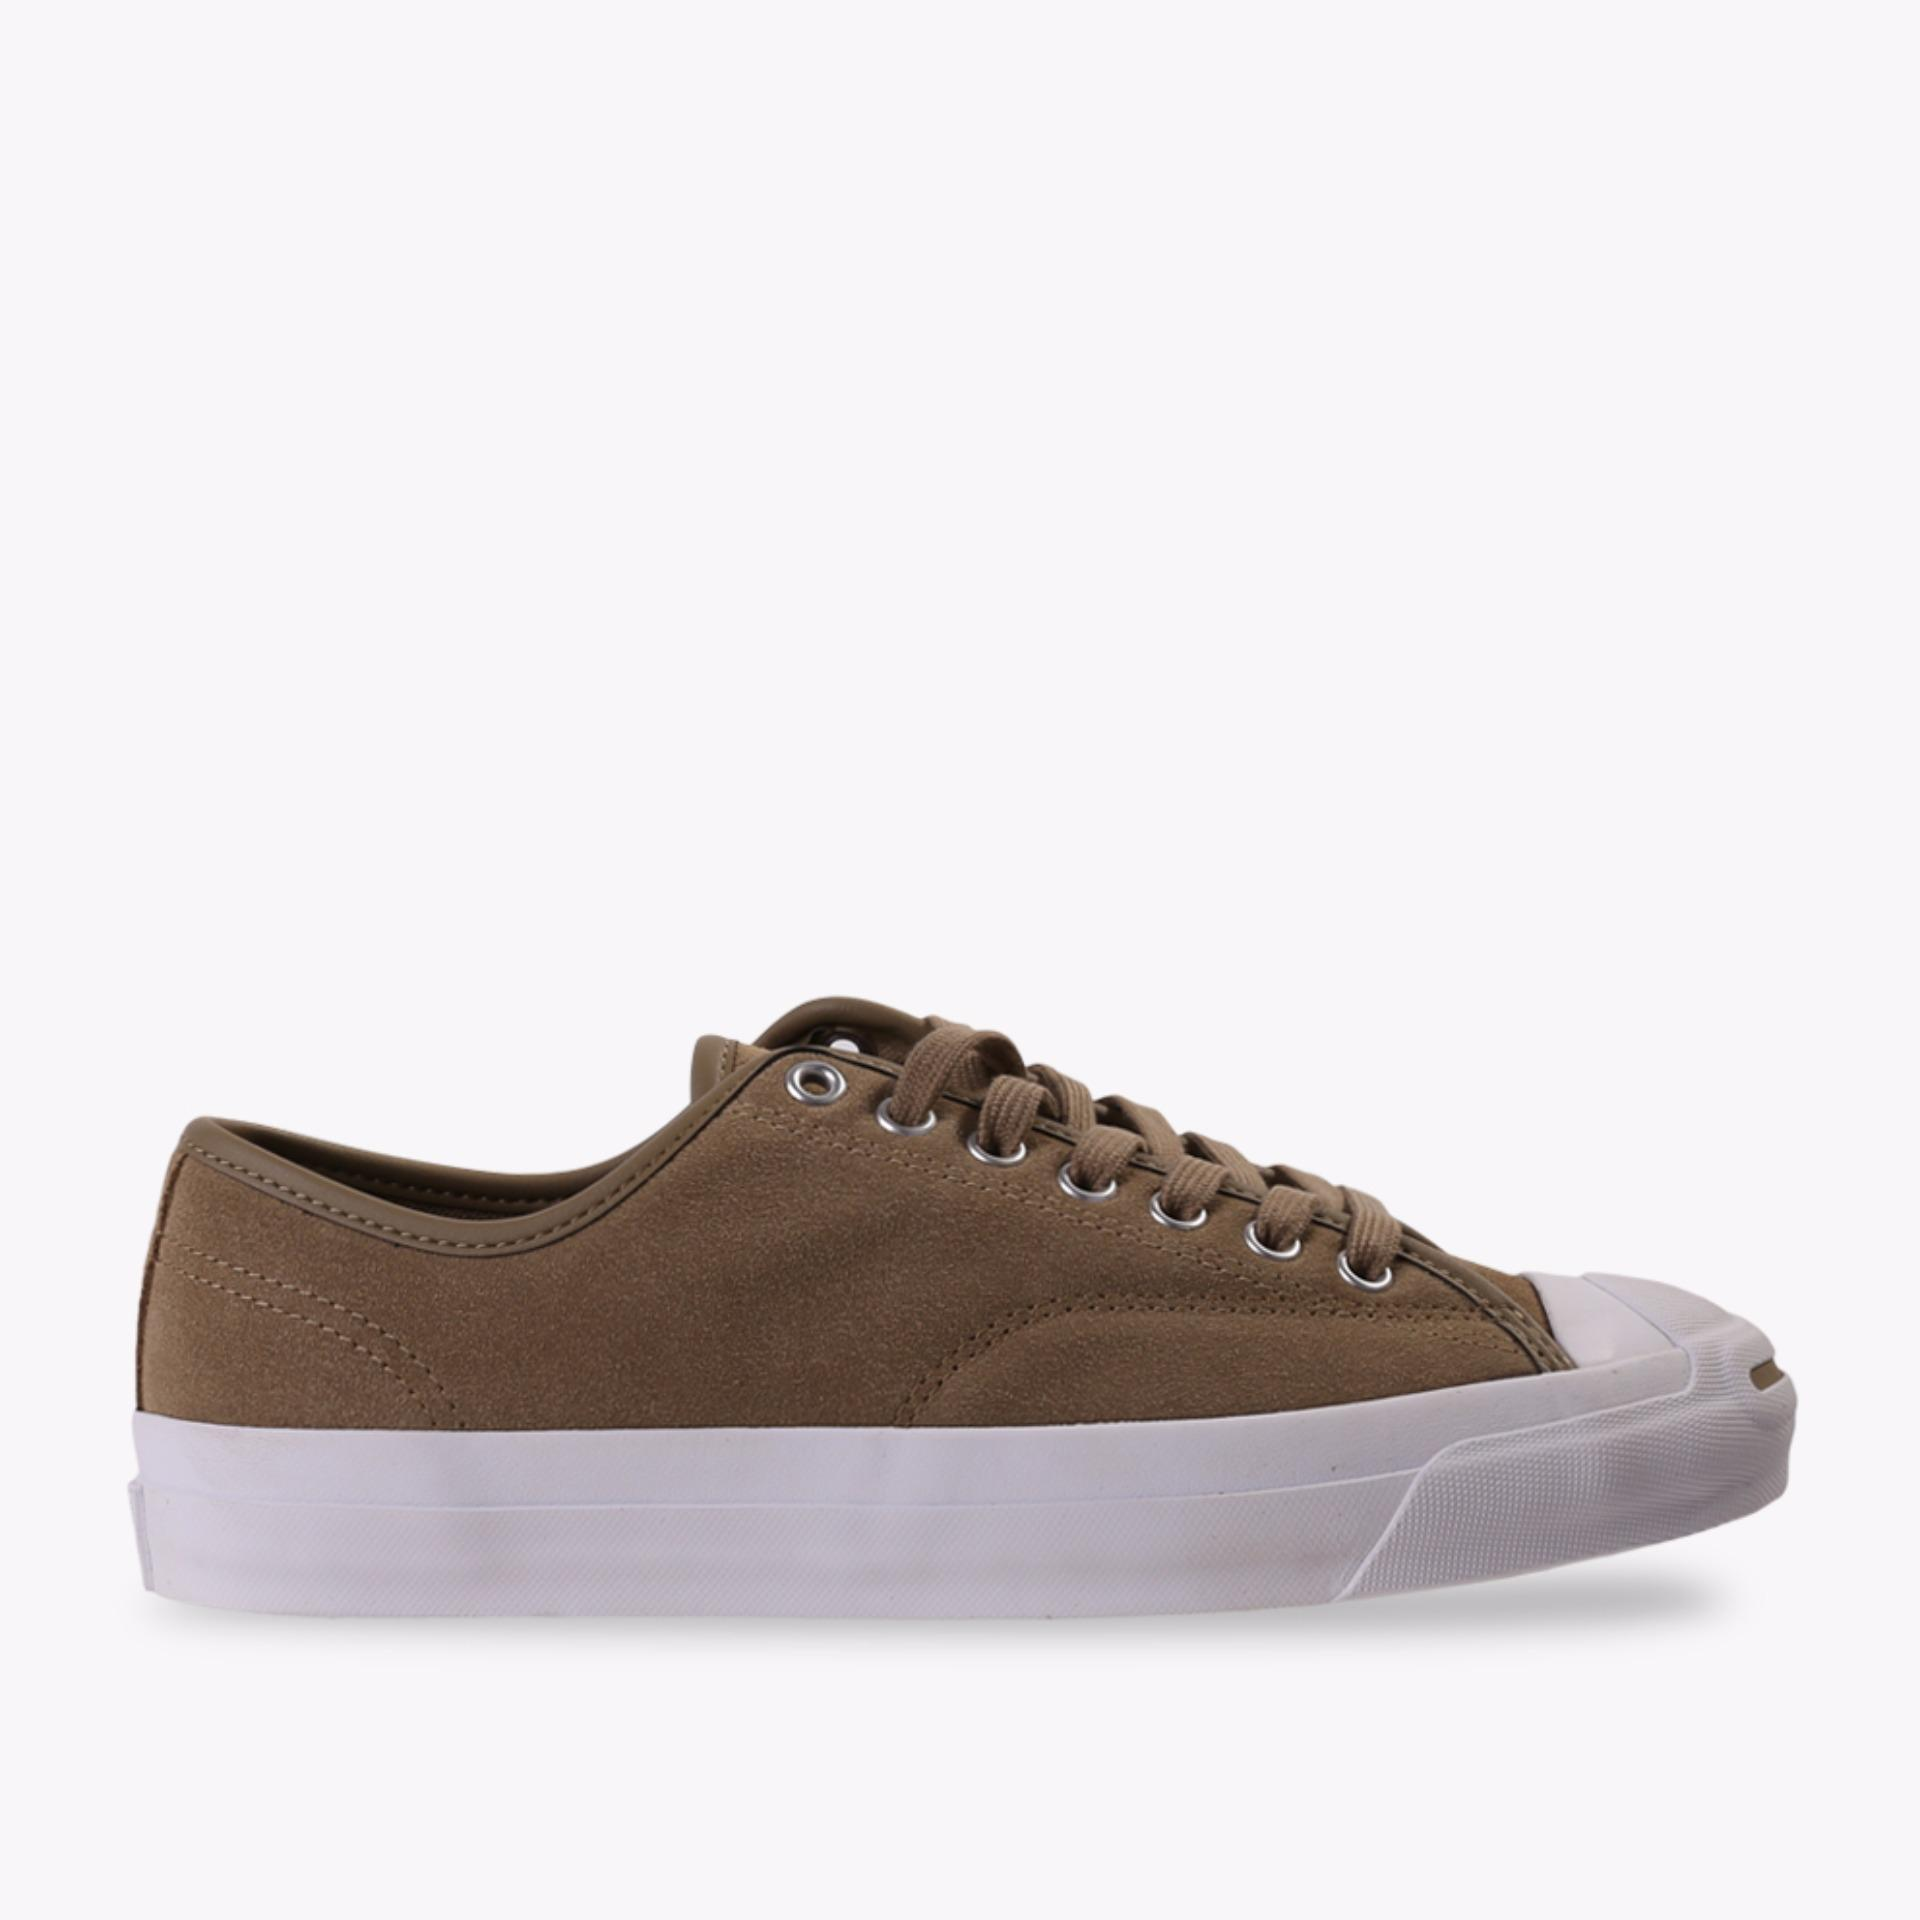 Ulasan Tentang Converse Jack Purcell Pro Ox Men S Sneakers Shoes Cokelat